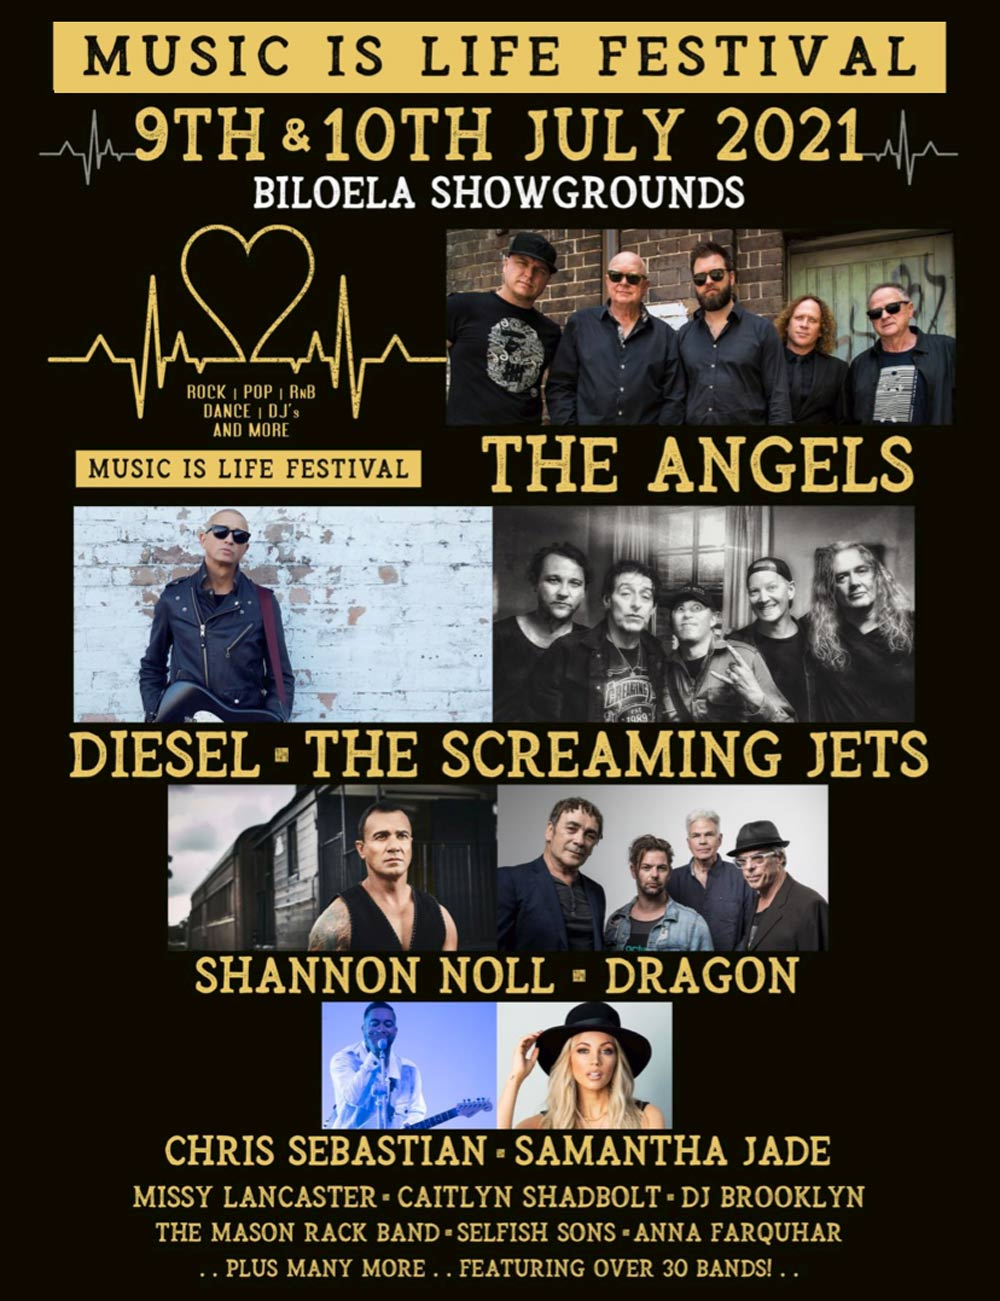 'Music Is Life' Festival – Angels To Headline Two Day Event